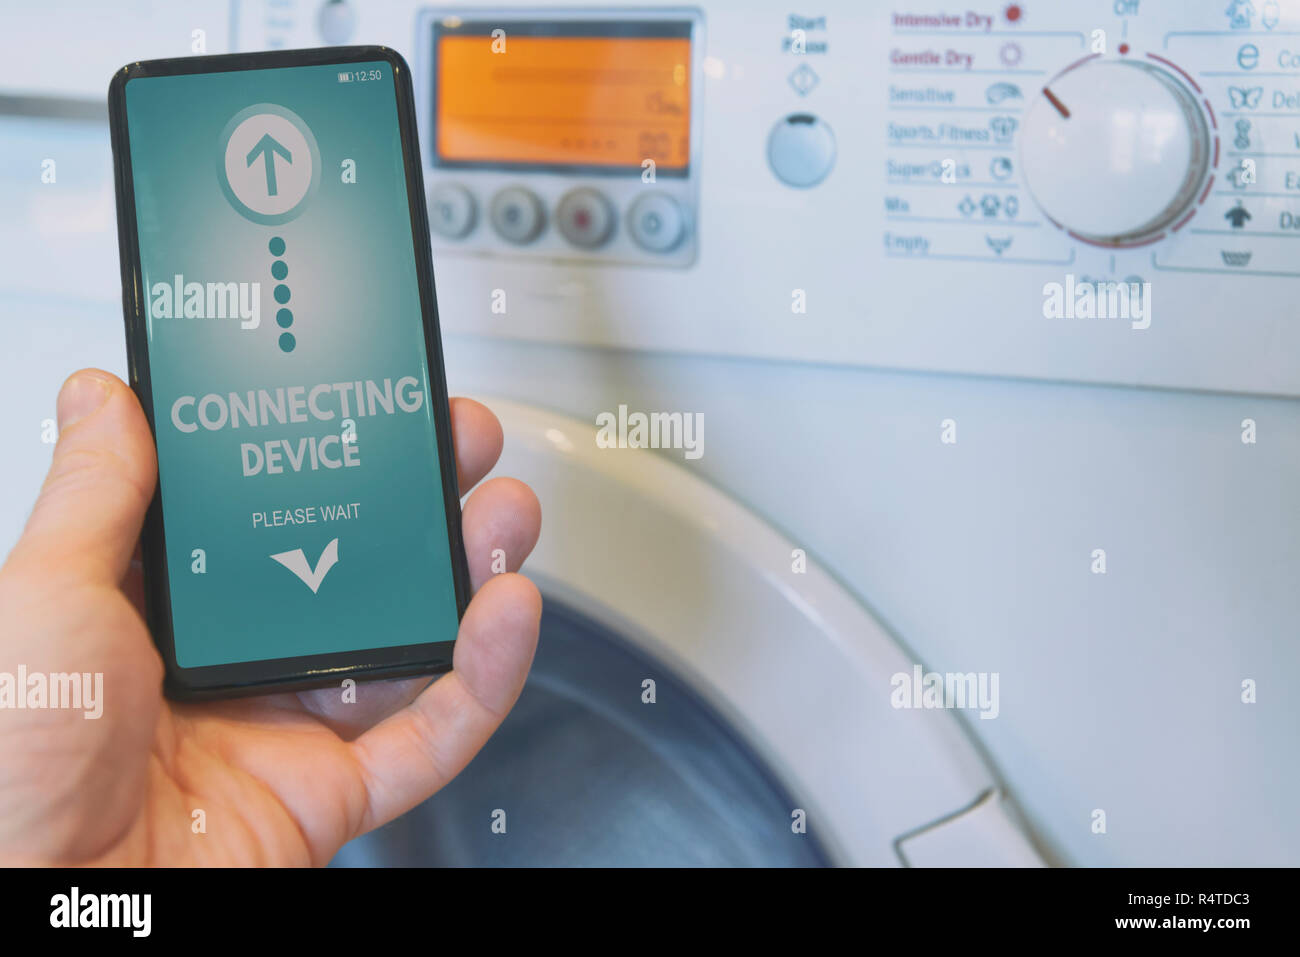 Connecting Washing machine with smart phone. Smart home and Internet of Things IoT concept - Stock Image